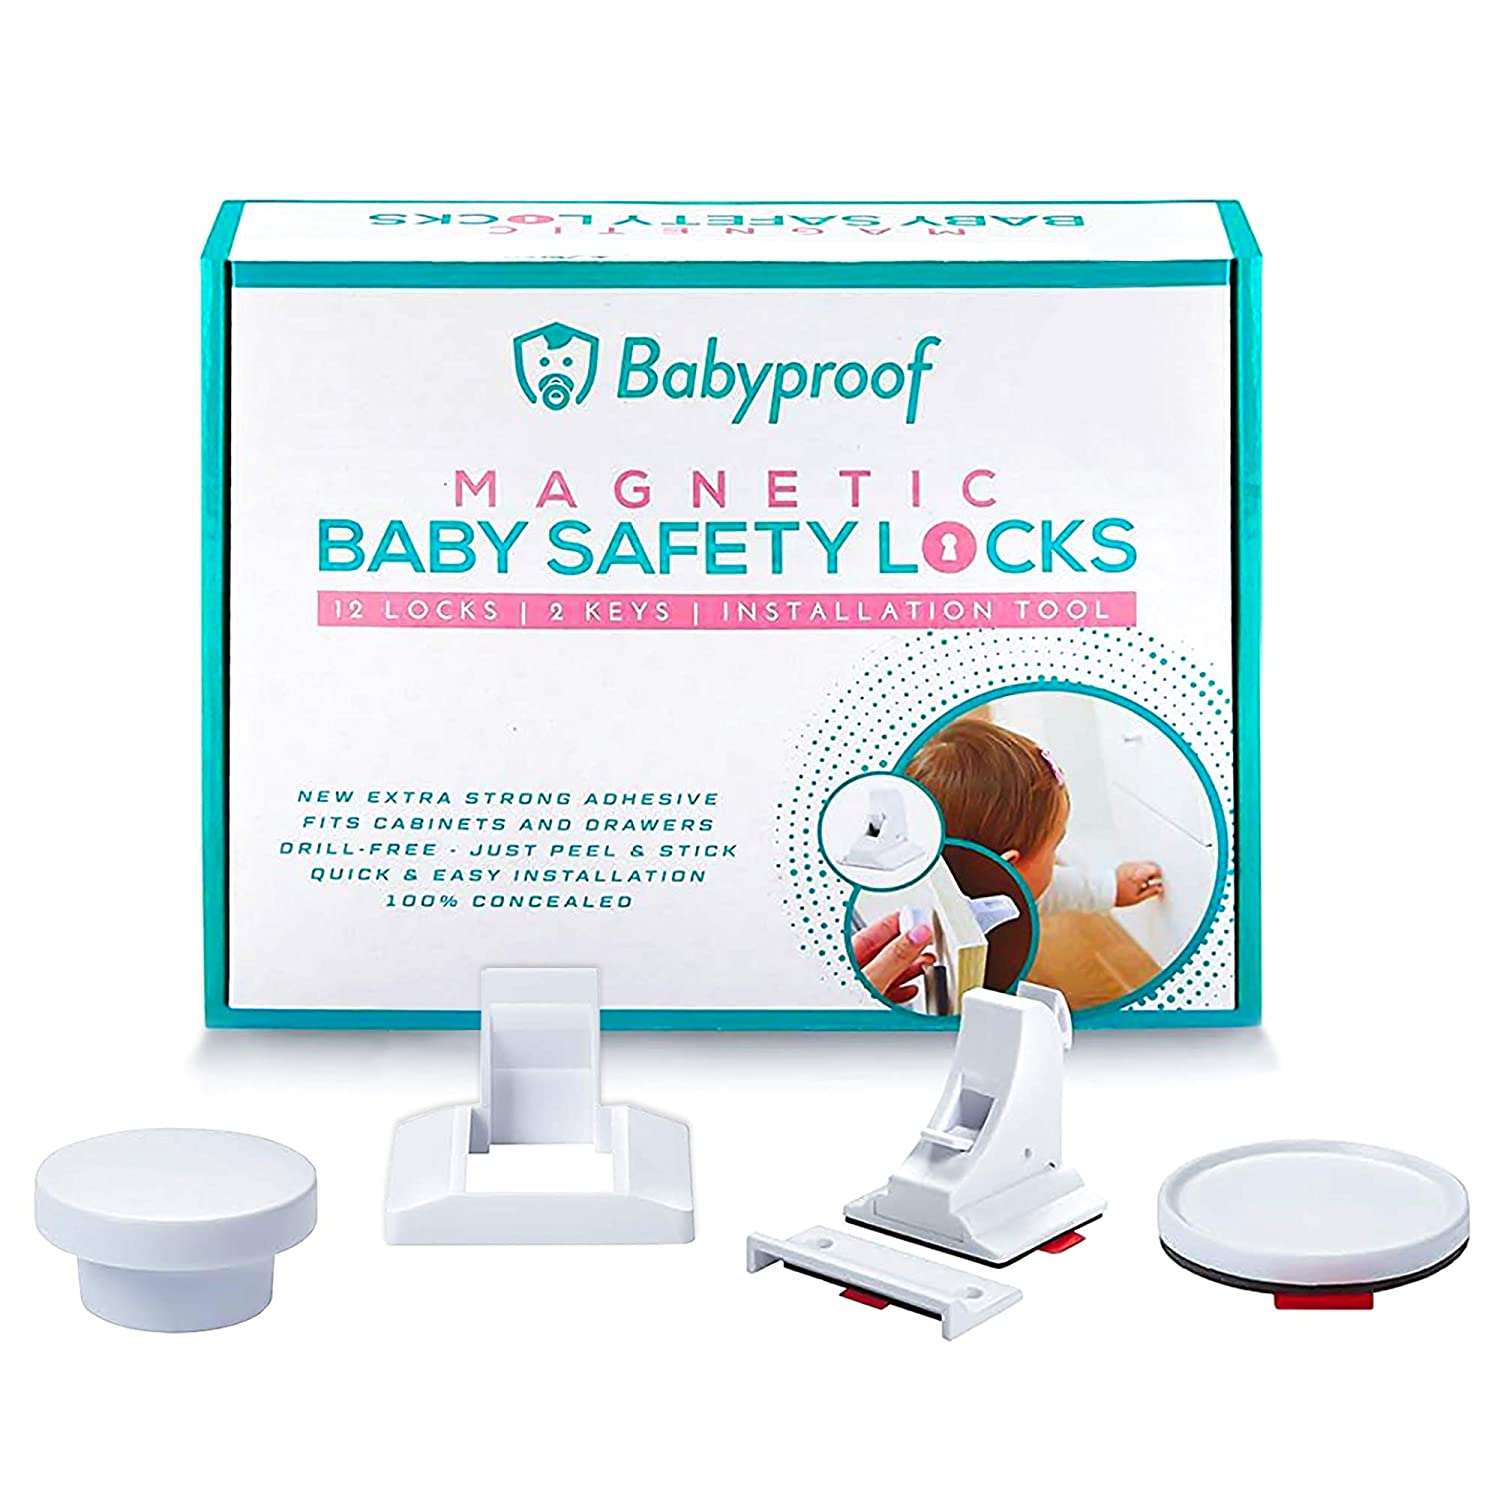 Child Safety Locks For Your Drawer, Cabinet or Kitchen - Baby Locks For Cabinets Drill Free - Magnetic Cabinet Locks With Extra Strong Adhesive - Easy And Fast Installation - 12 Pack